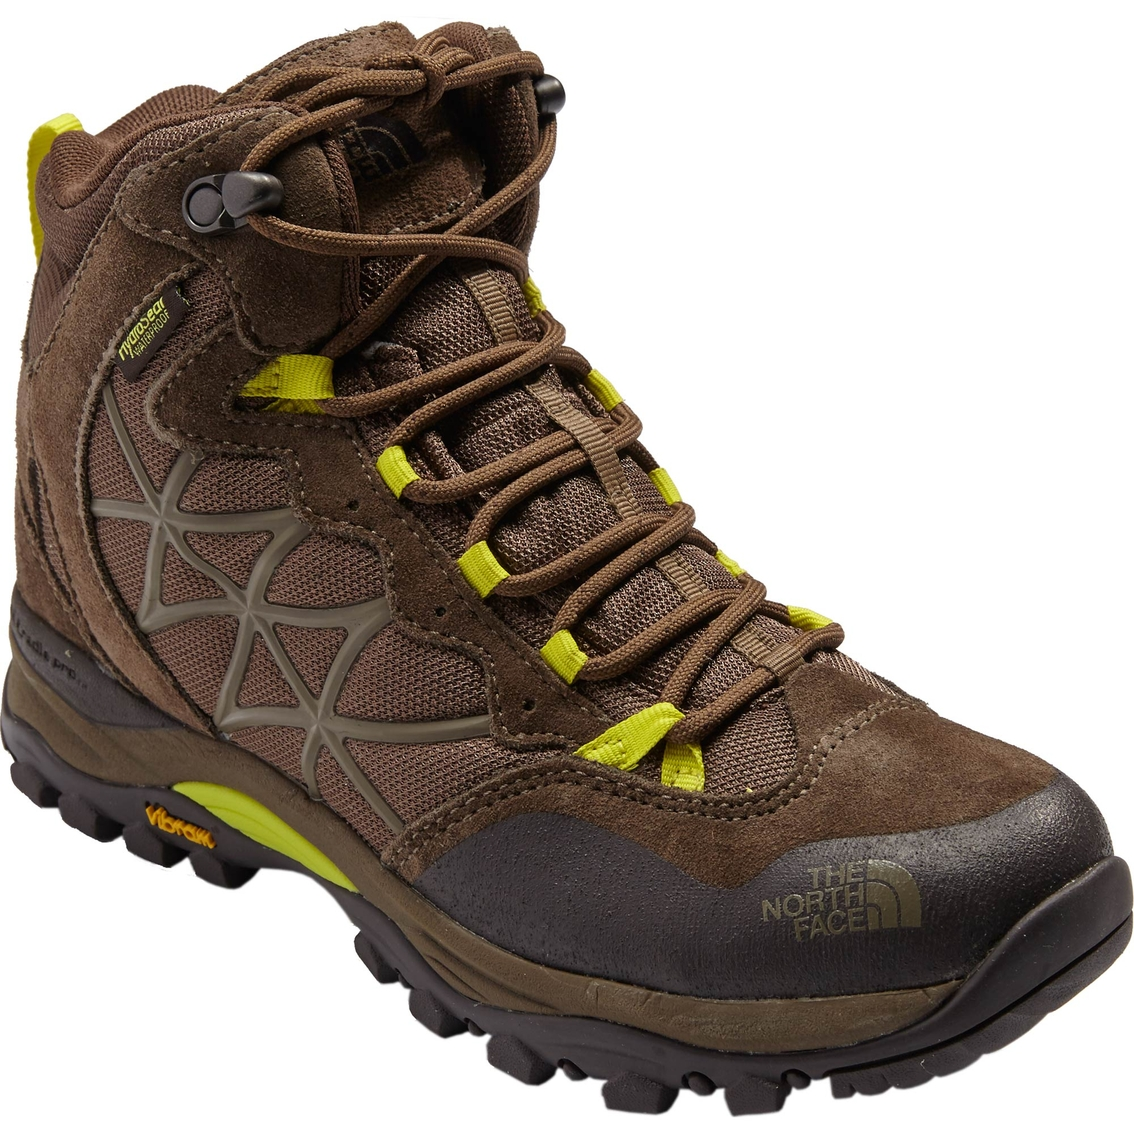 The North Face Womenu0026#39;s Storm Hiker Hiking Boots | Outdoor ...